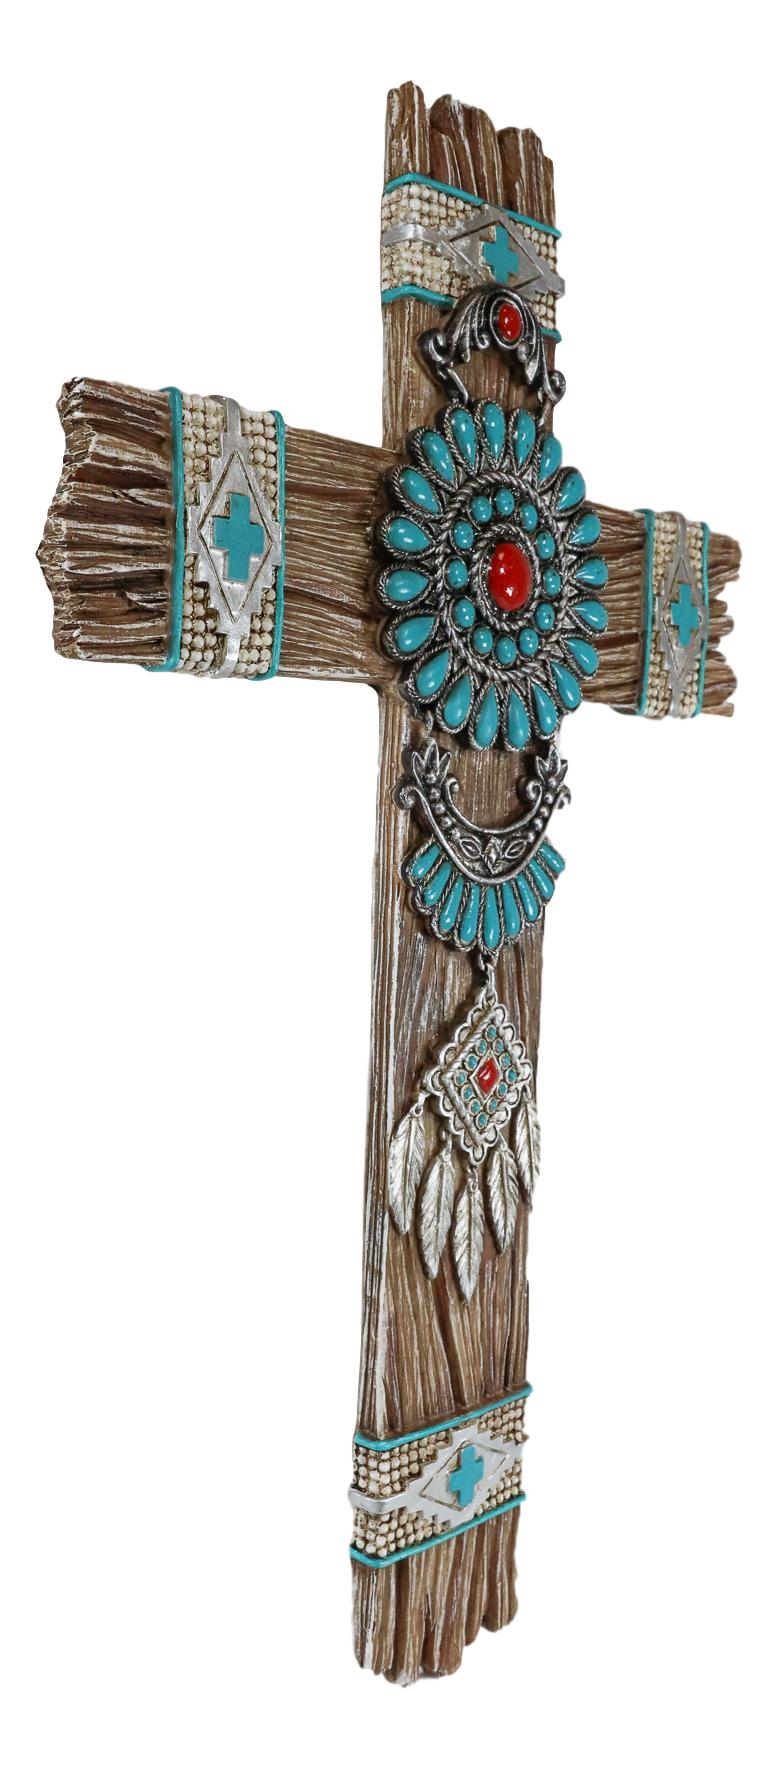 Southwest Native Indian Navajo Vector Turquoise Beads Dreamcatcher Wall Cross